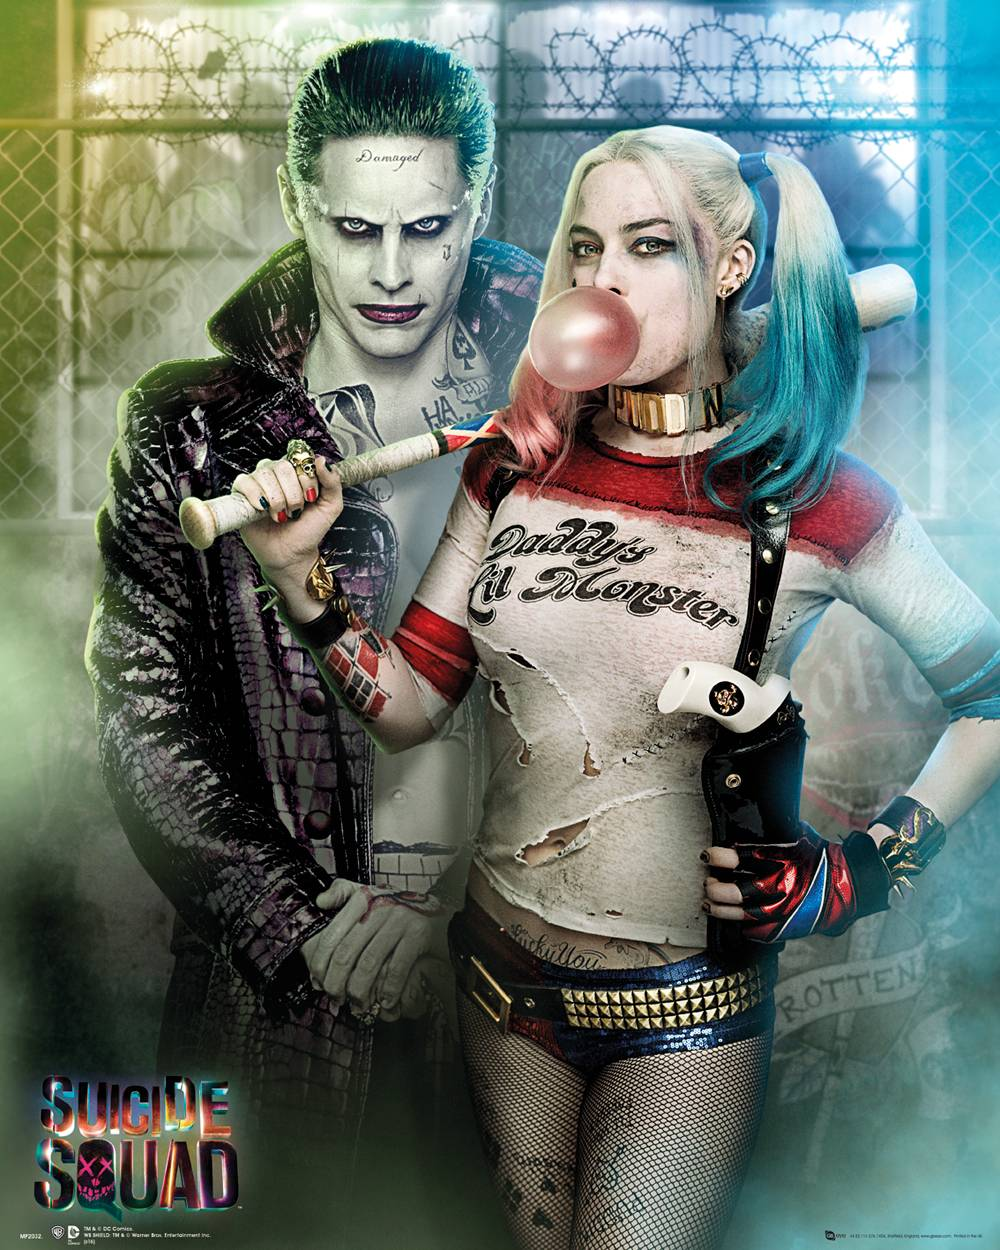 Harley Quinn Bettwäsche Kaufe Suicide Squad Joker And Harley Quinn Mini Poster 40x50cm